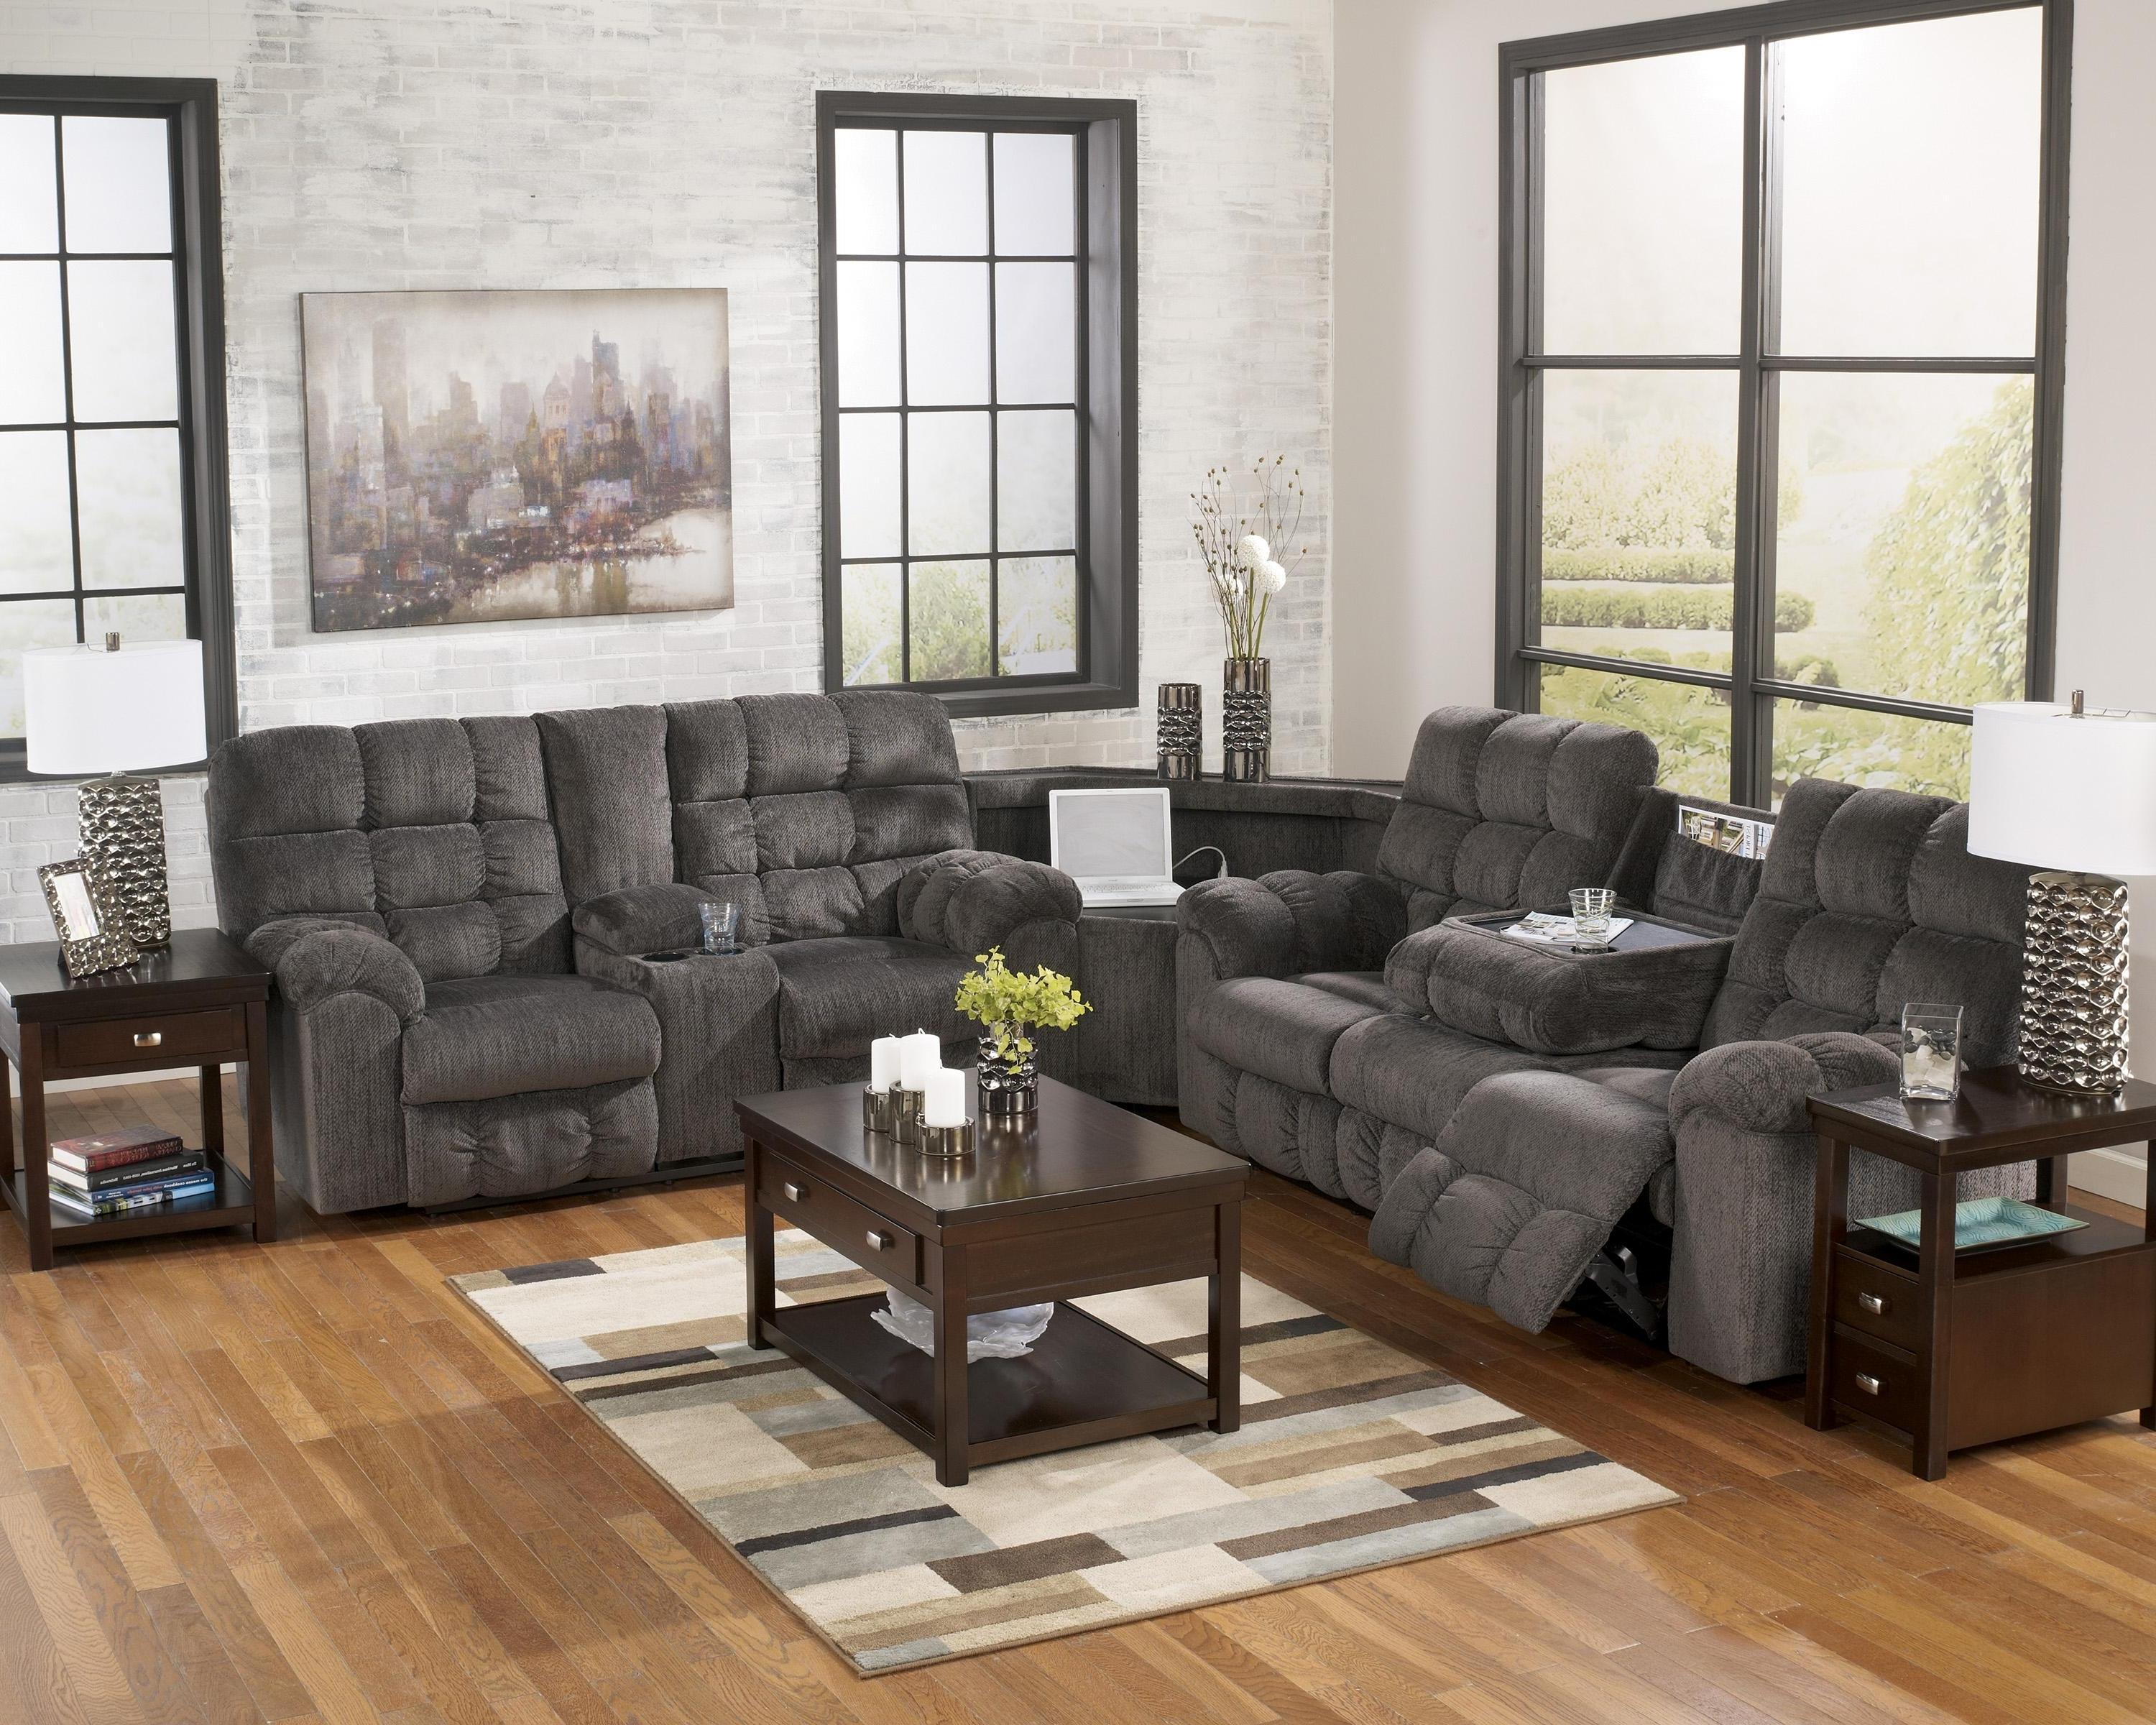 Fashionable Las Vegas Sectional Sofas Intended For Reclining Sectional Sofa With Right Side Loveseat, Cup Holders And (View 2 of 15)